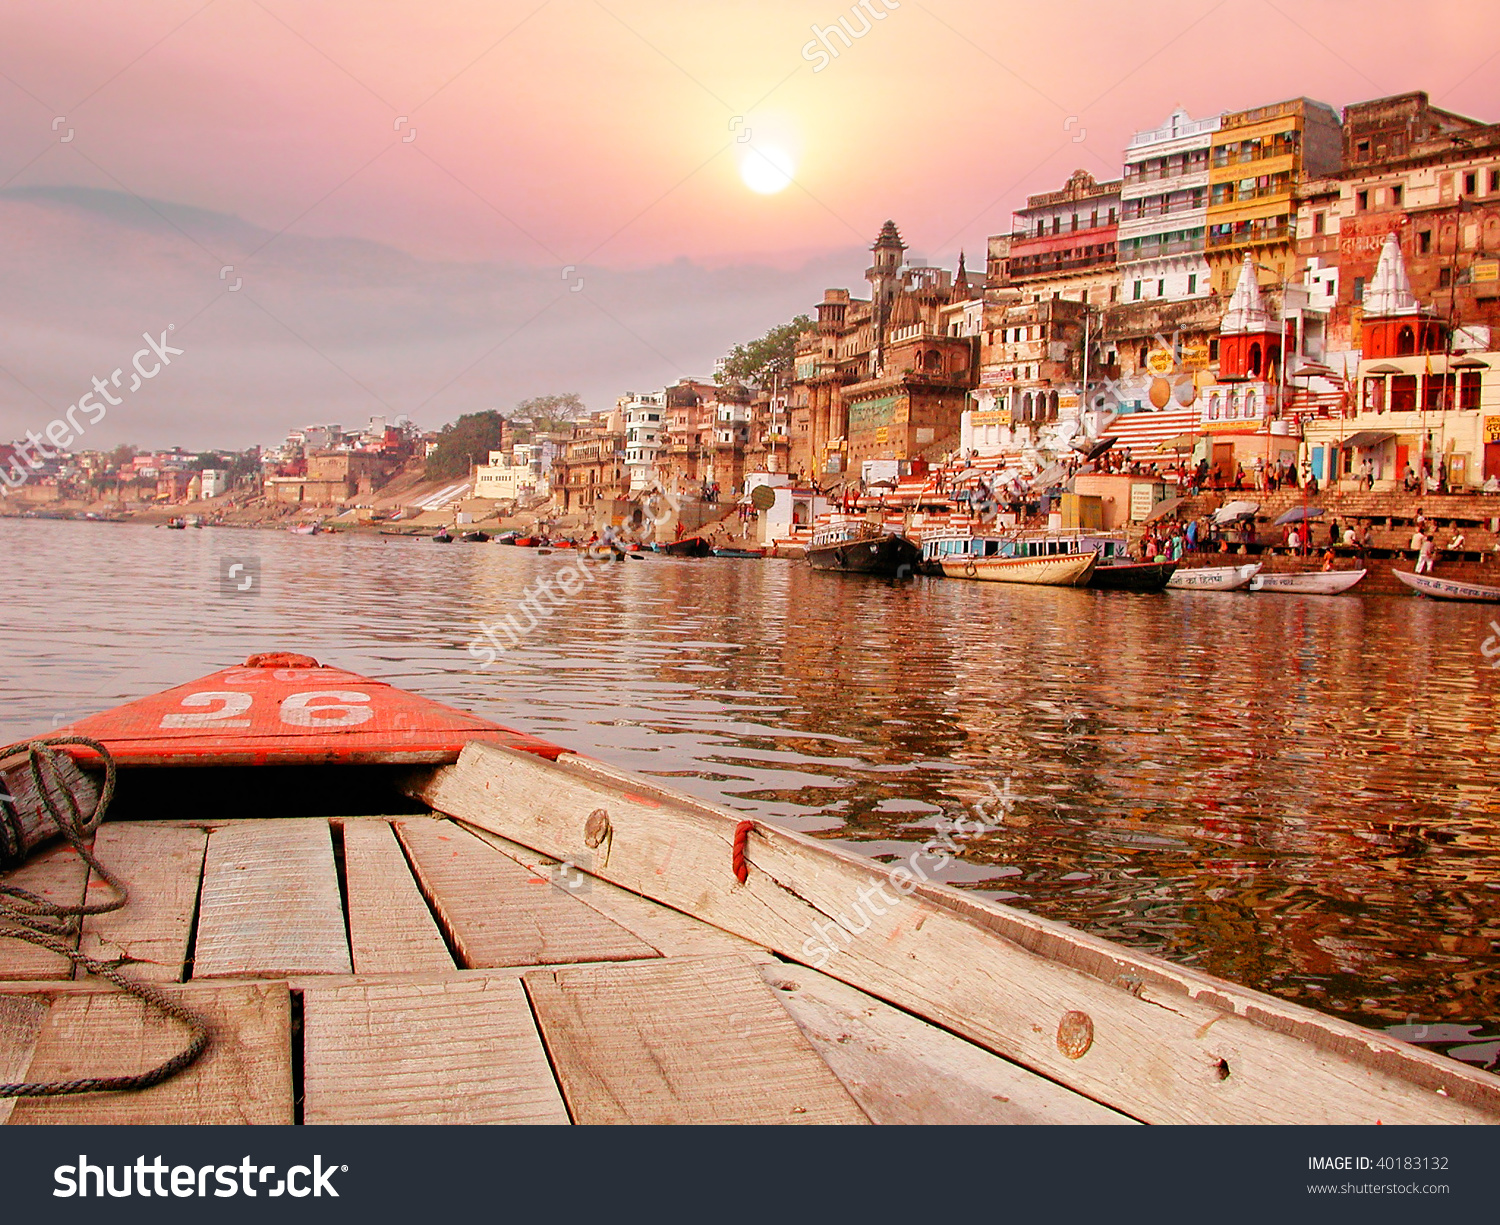 Ganga river clipart picture transparent On Sunset River Bank On Ganges Stock Photo 40183132 - Shutterstock picture transparent